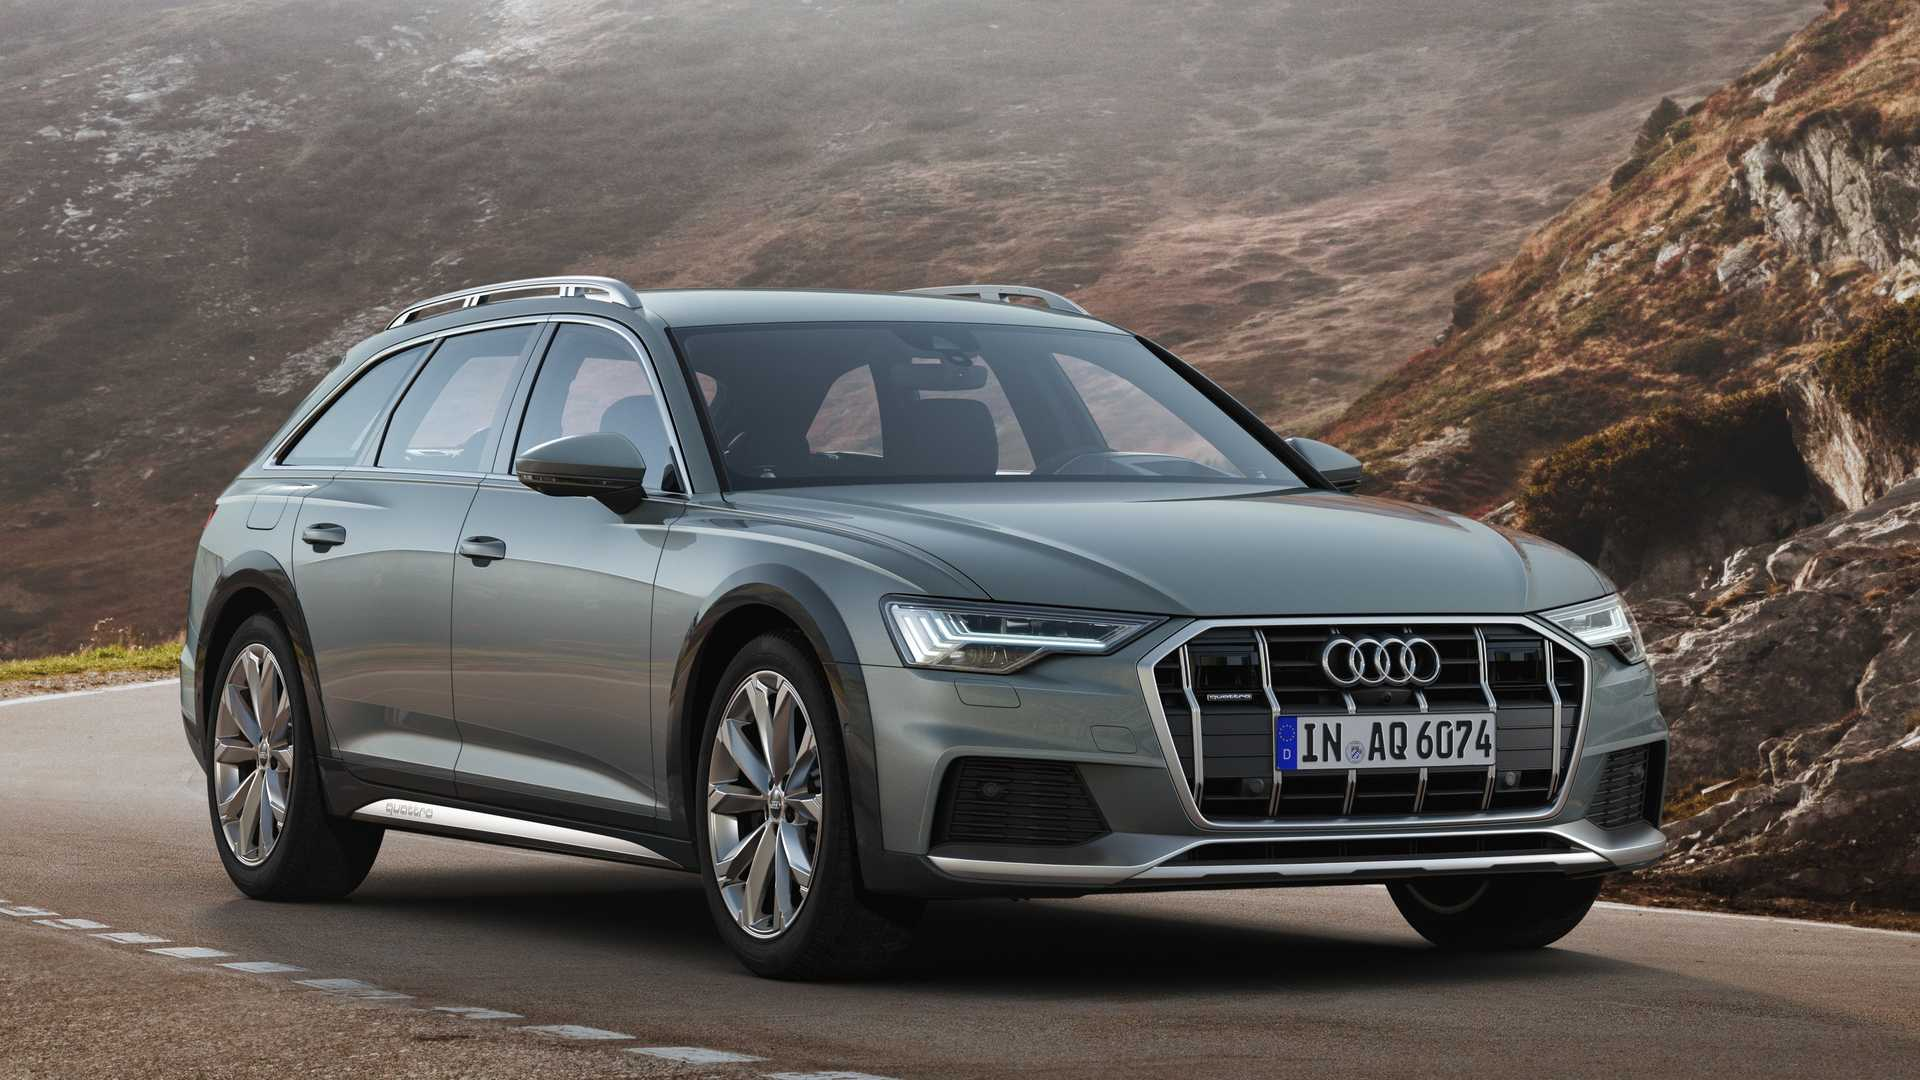 42 All New 2020 Audi A6 Redesign And Review